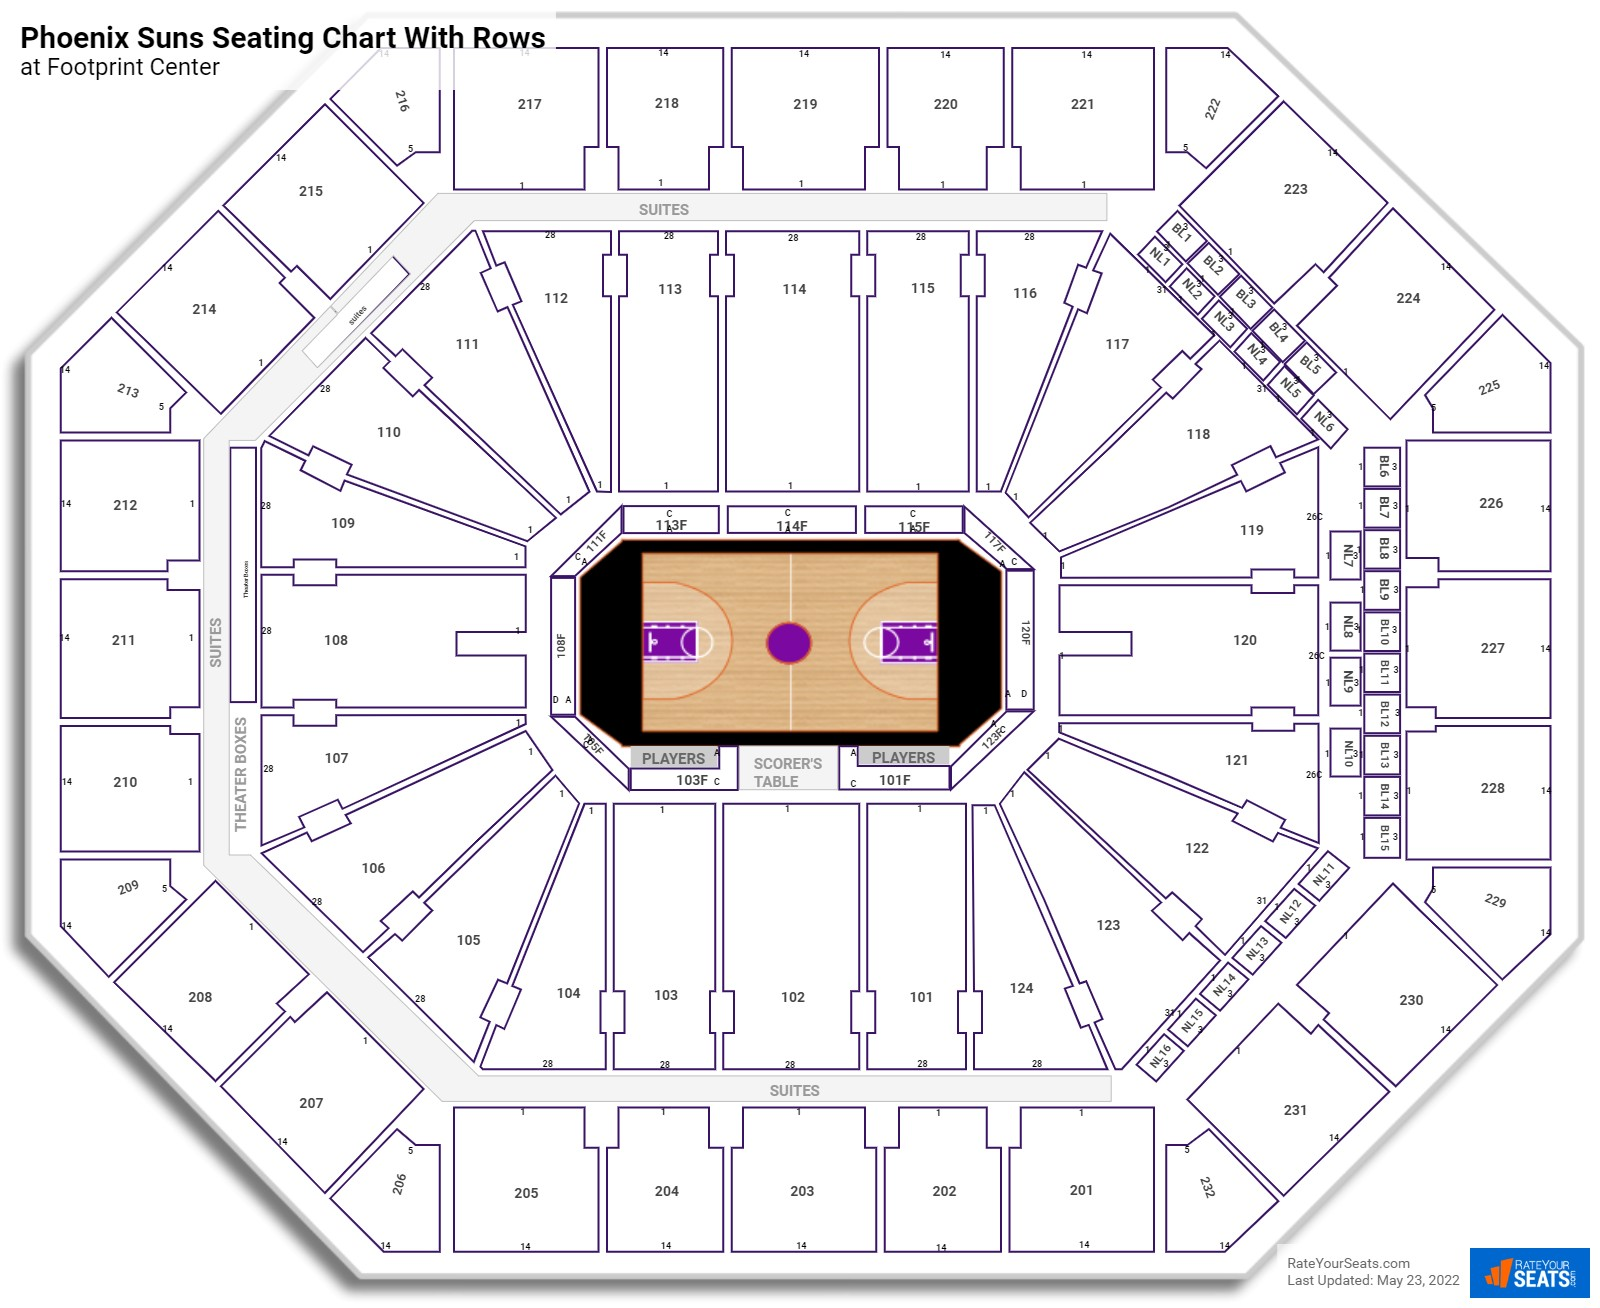 Talking Stick Resort Arena seating chart with rows basketball